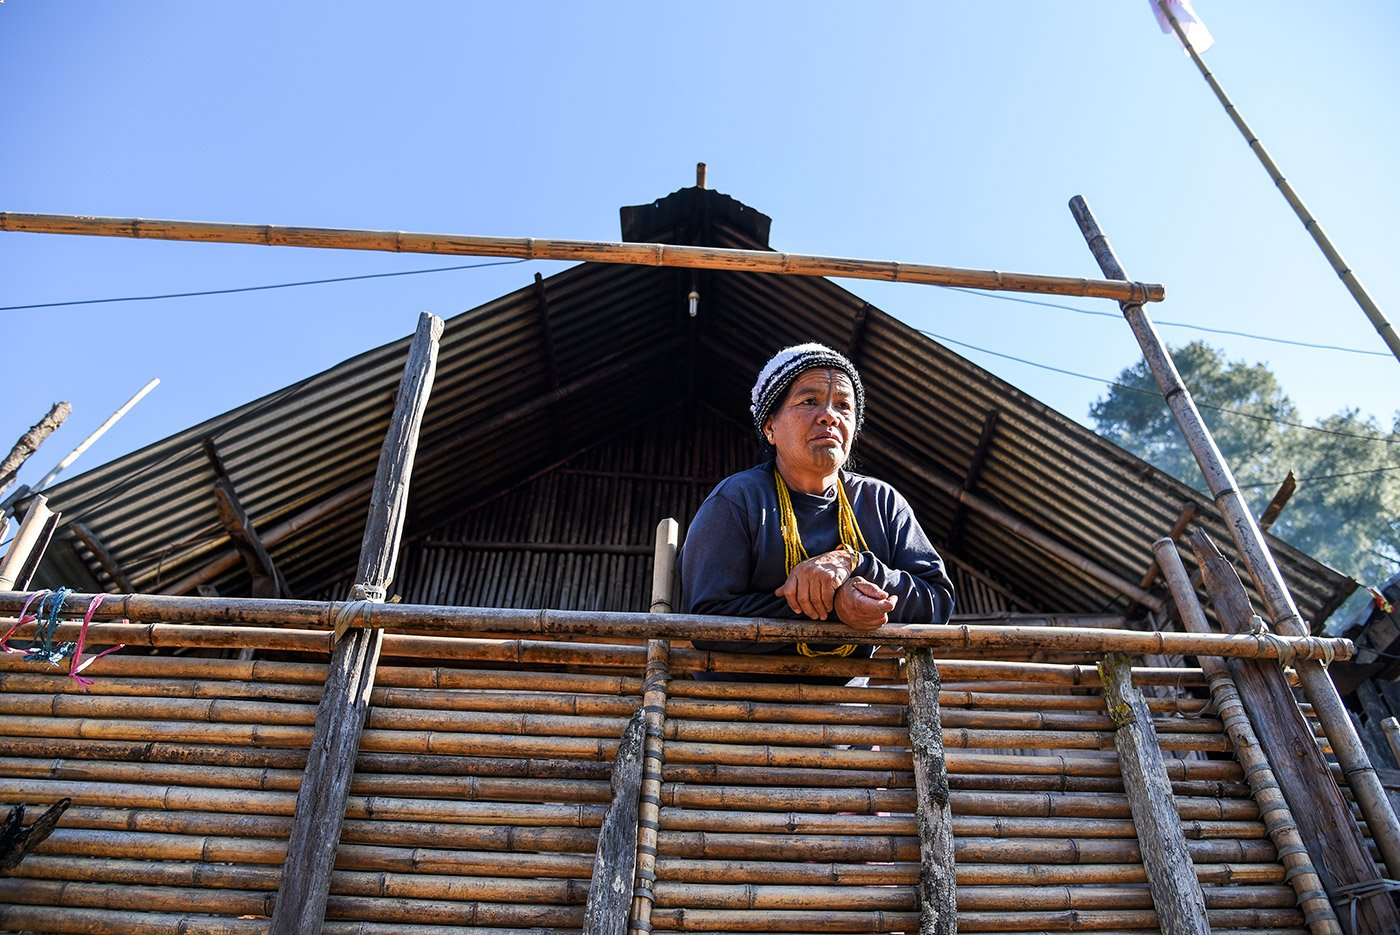 Narang Yamang, the community worker (gamburi in the Apatani language), wears strings of traditional beads around her neck